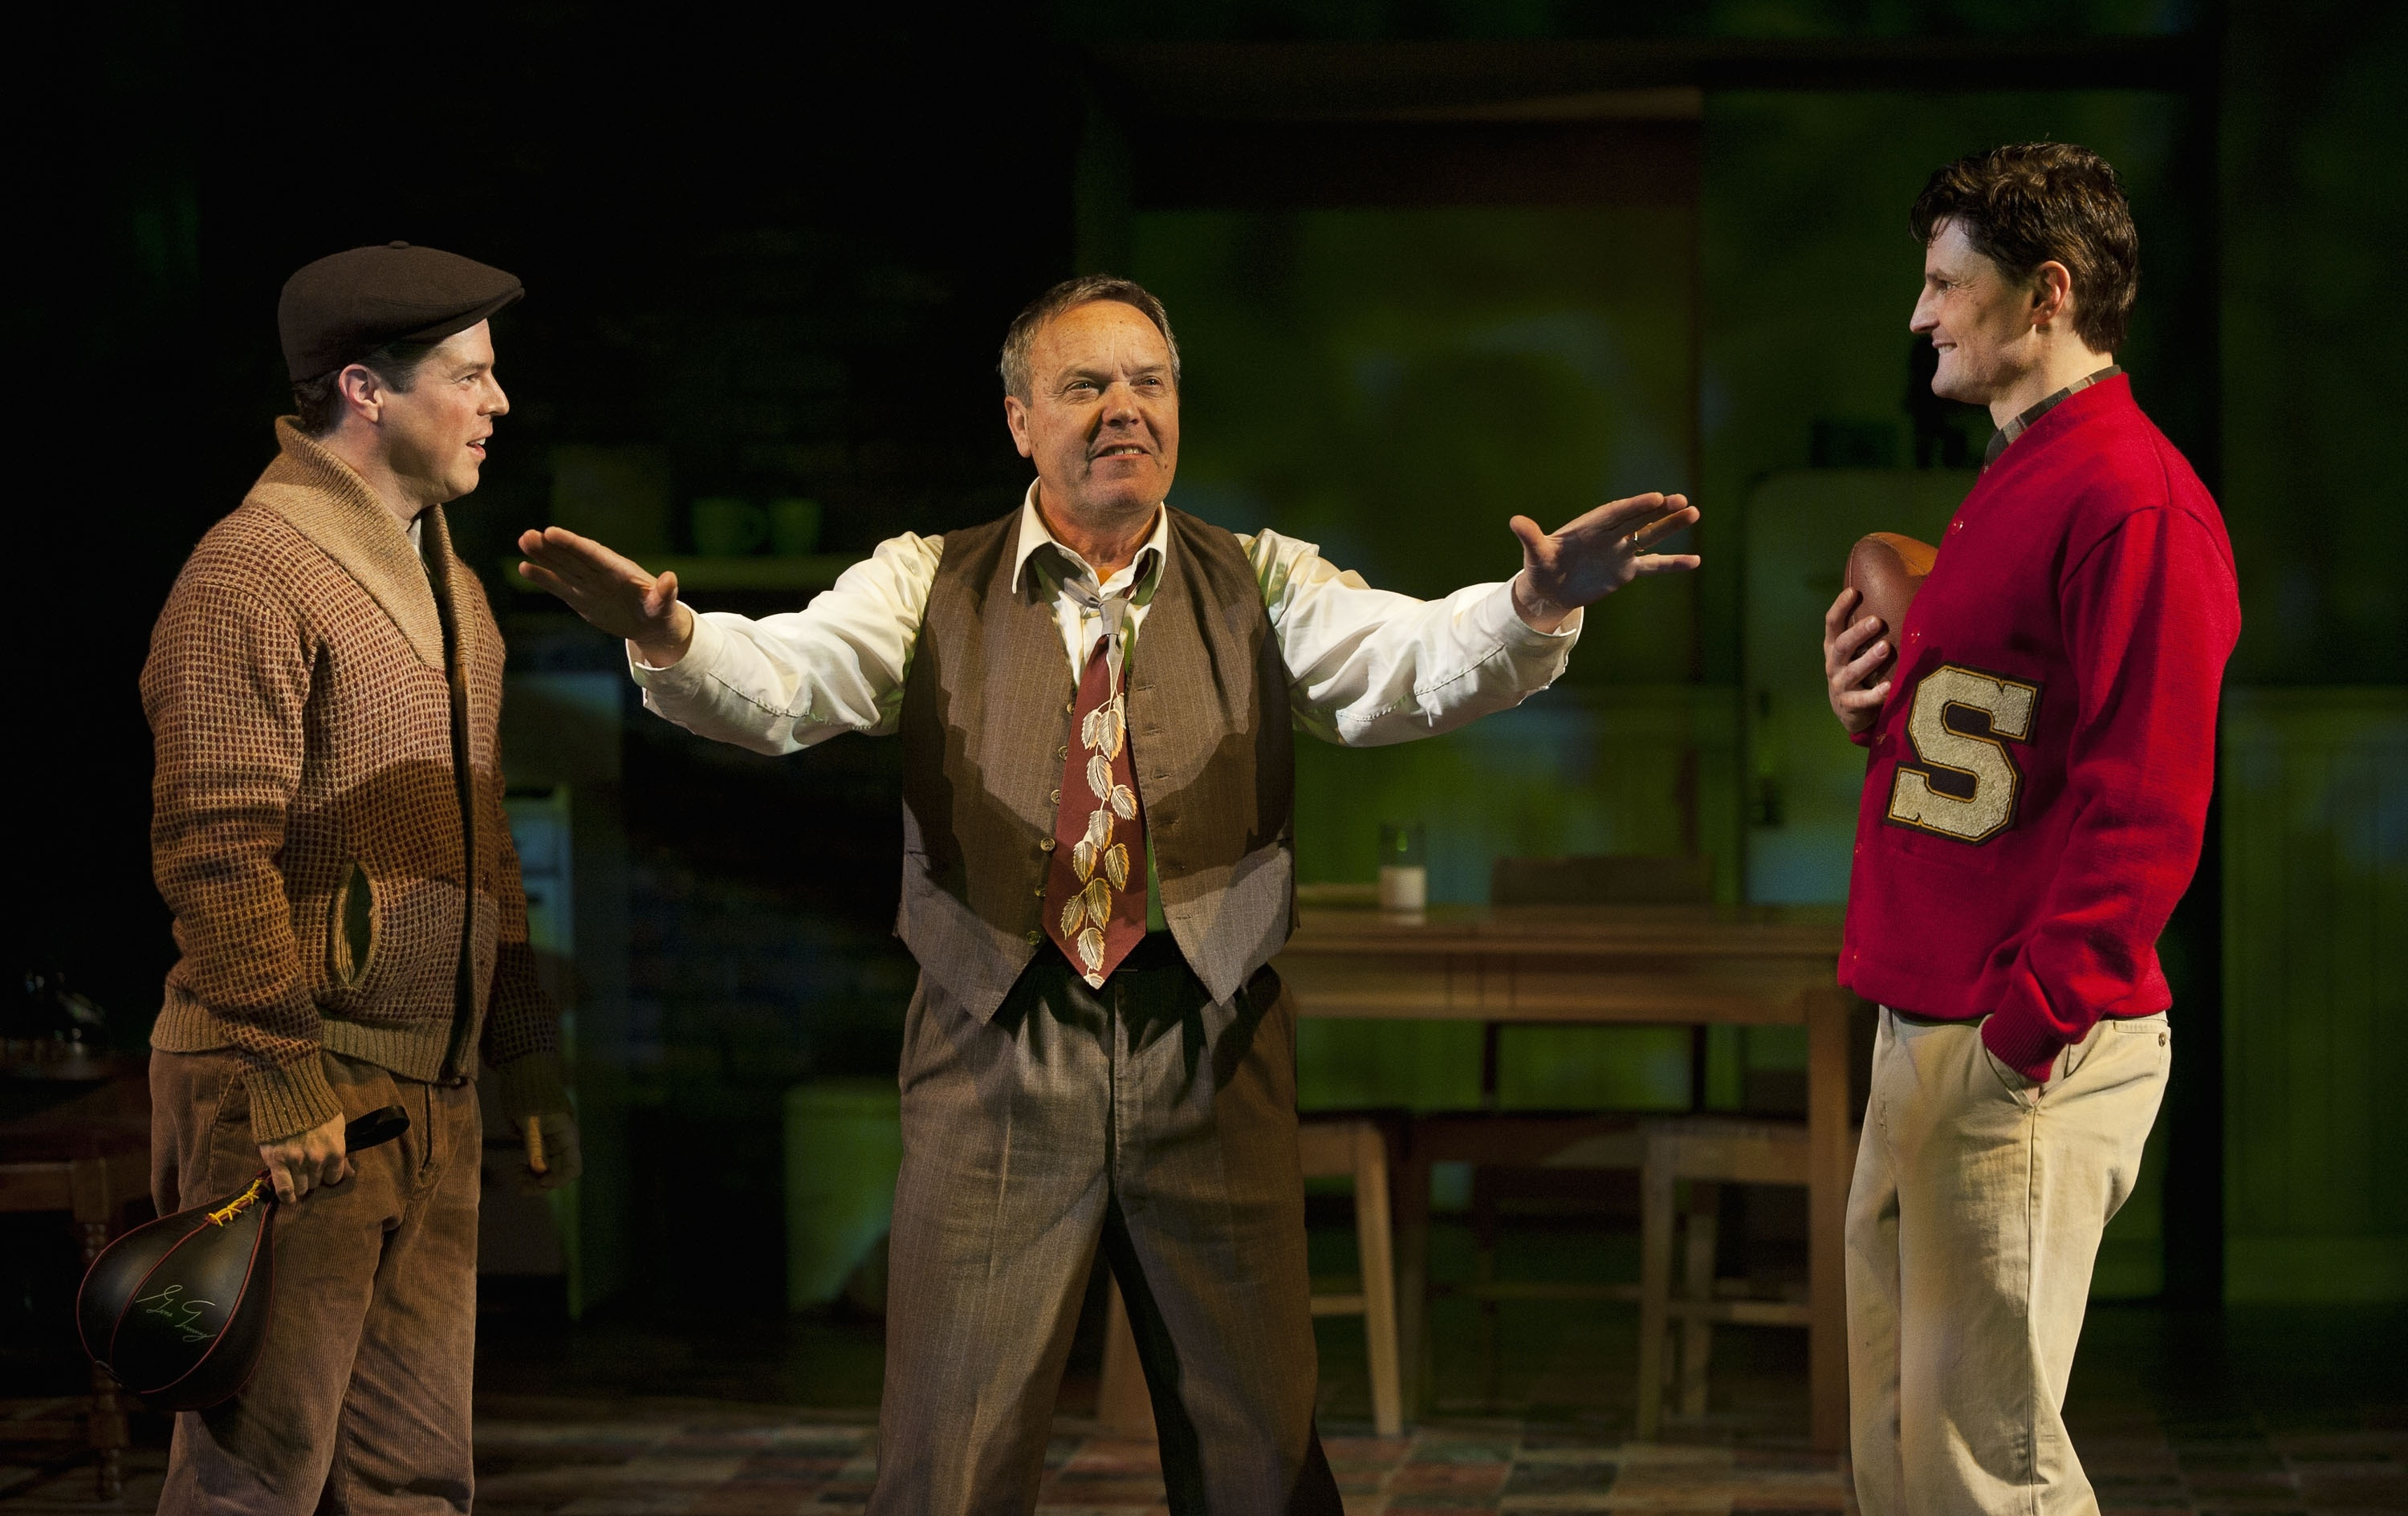 Kevin K. James, Tom McBeath and Bob Frazer in Arthur Miller's Death of a Salesman (2010-2011 Season). Photo by David Cooper.